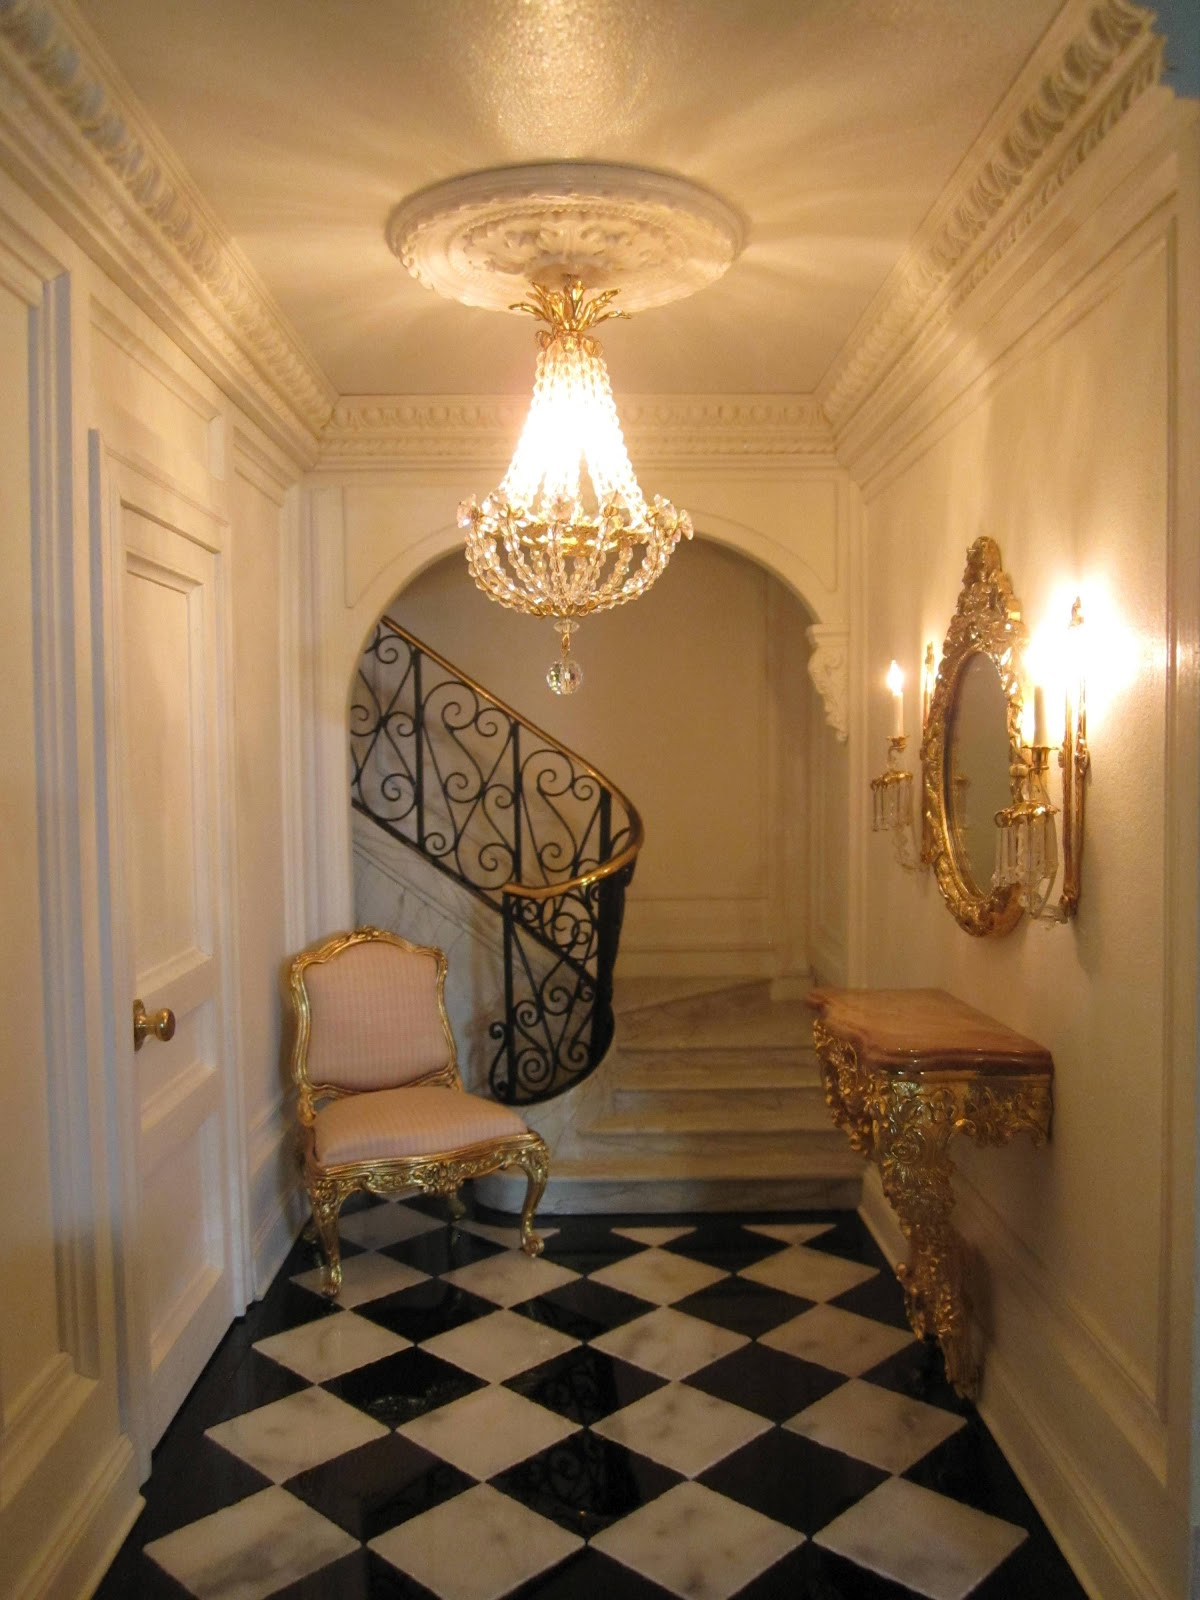 This-looks-so-luxe-Petit-Tresor-entrance-hall-wallpaper-wp5004077